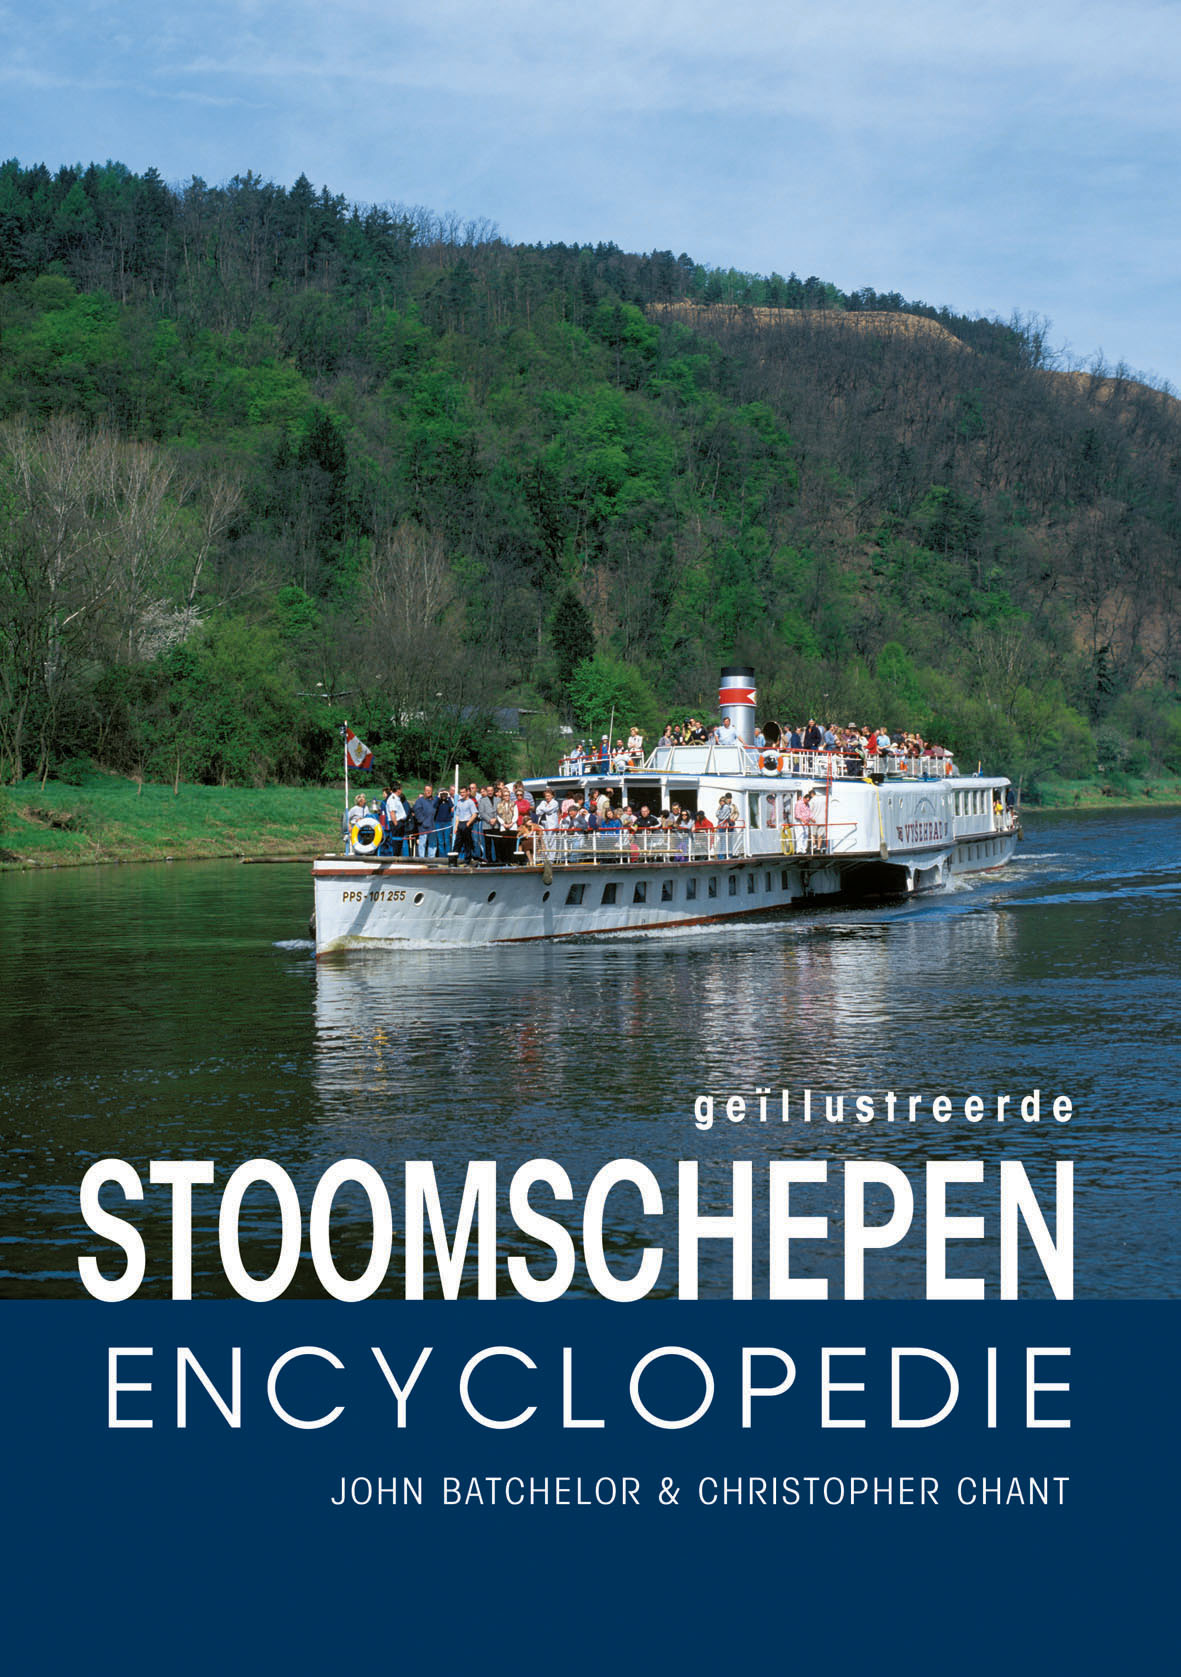 Stoomschepen Encyclopedie